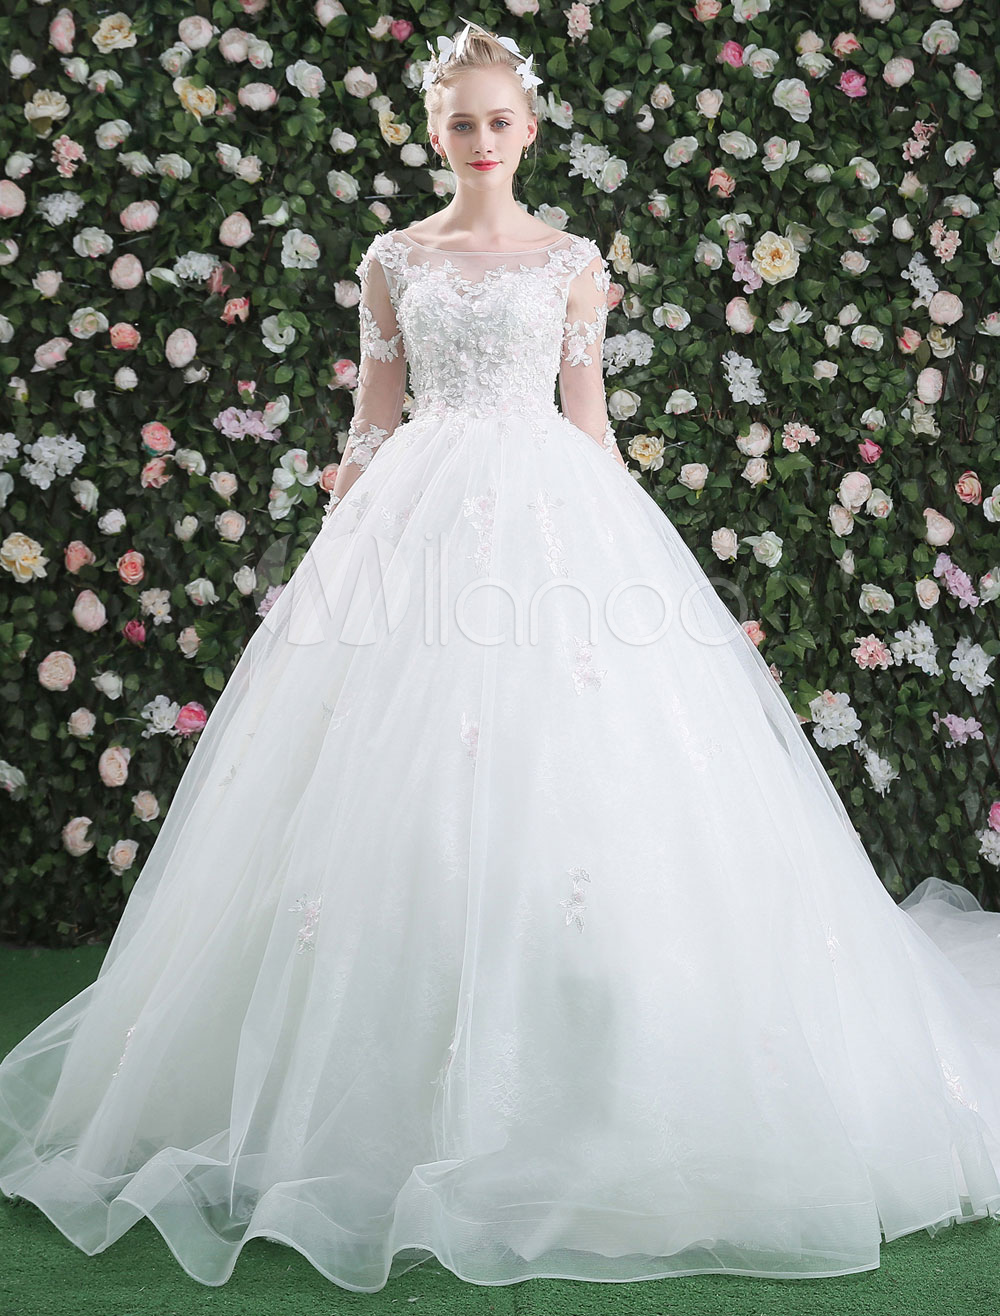 69471070c ... Ball Gown Wedding Dresses Long Sleeve Luxury Princess Lace Flowers  Beading White Bridal Gown With Long ...